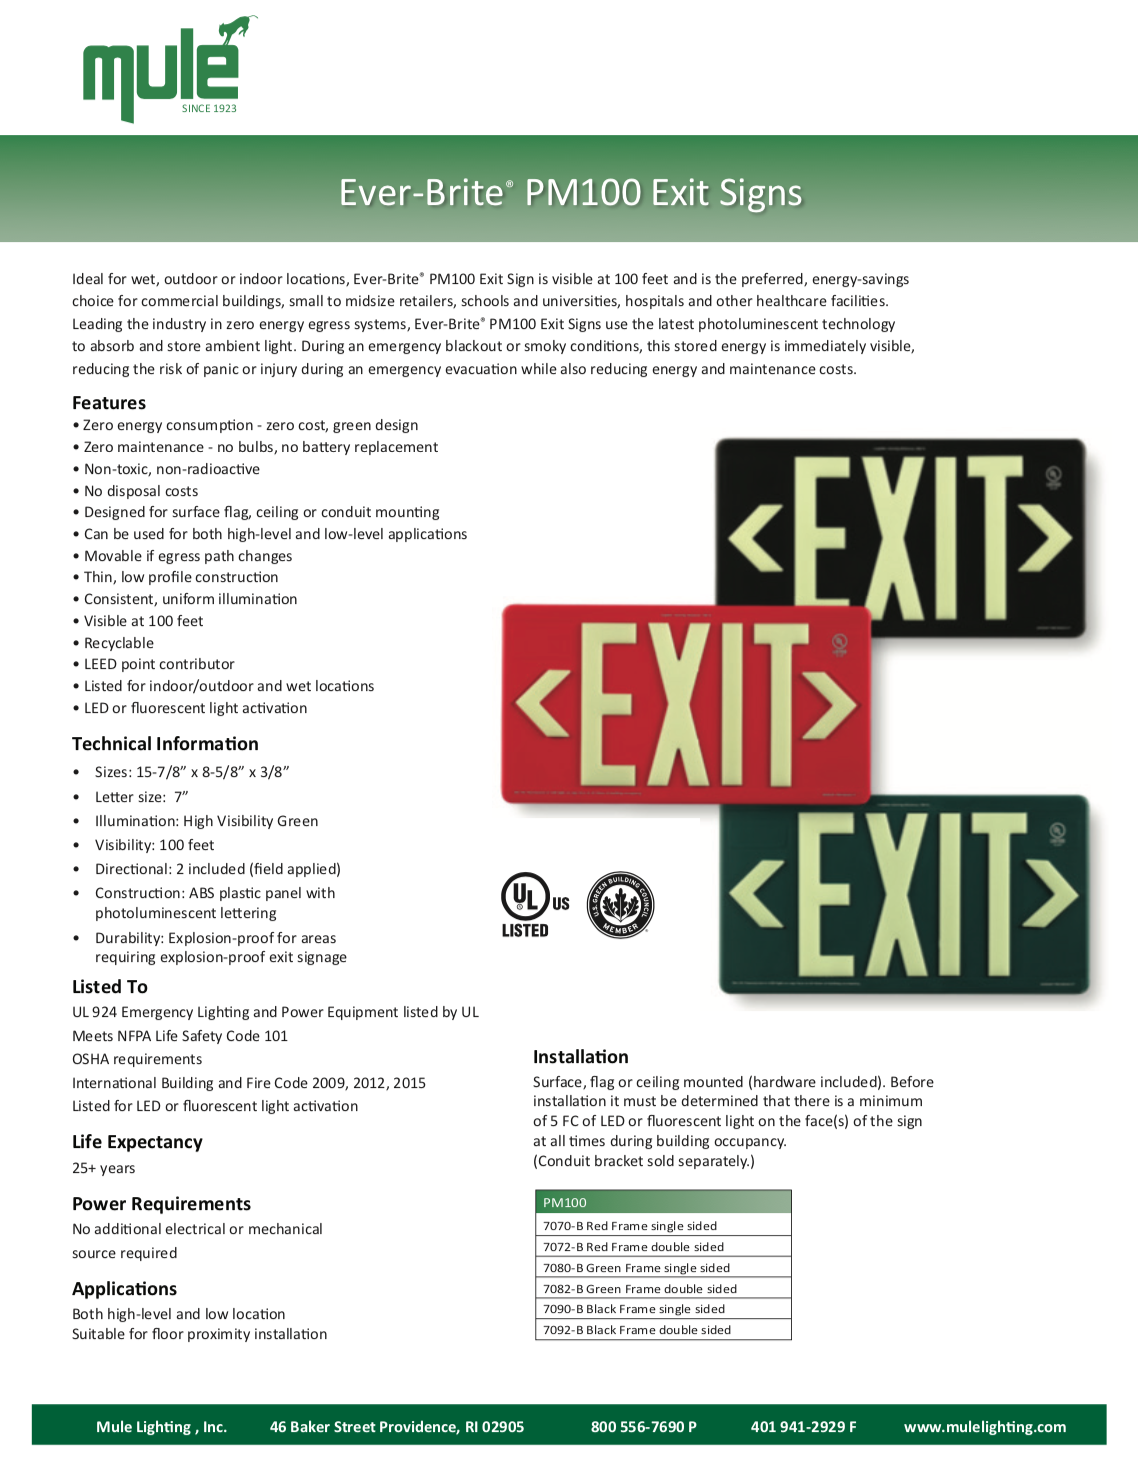 Mule Lighting EBPM100 ExitSign Literature